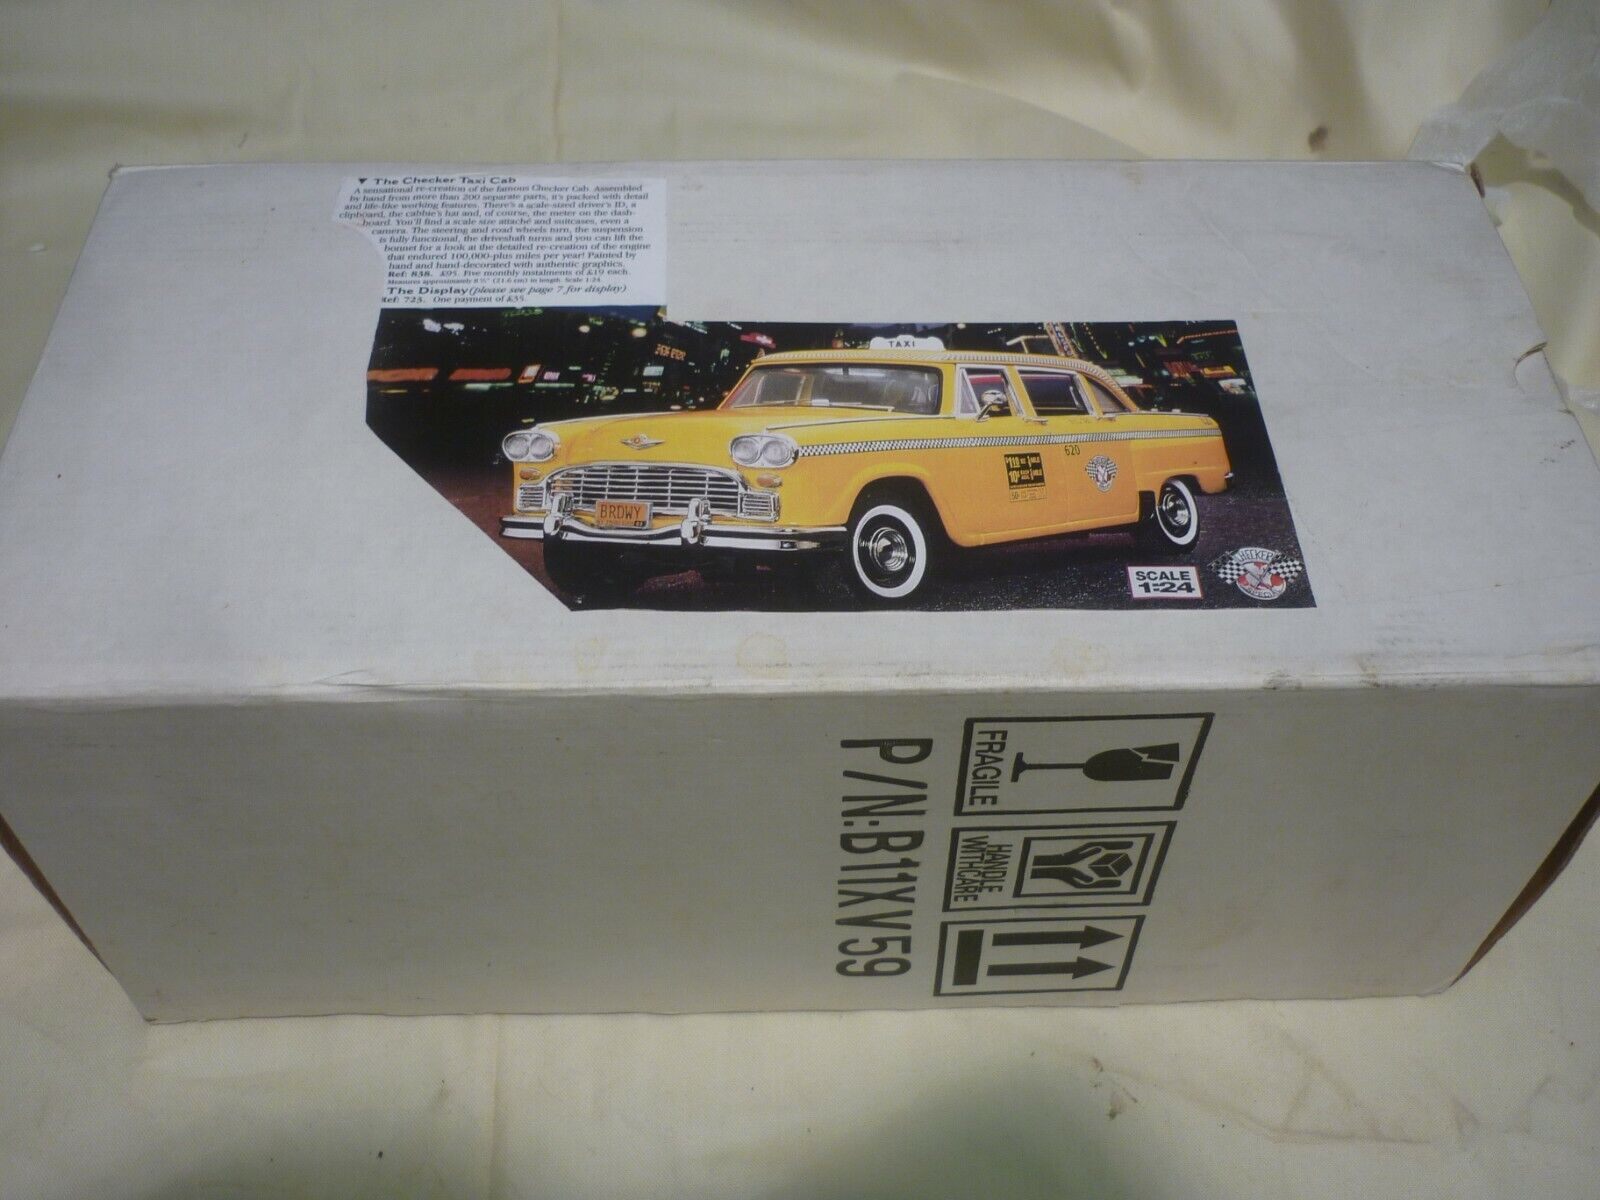 Une occasion FRANKLIN Comme neuf Chequer Taxi, Boxed, papiers, suite cas